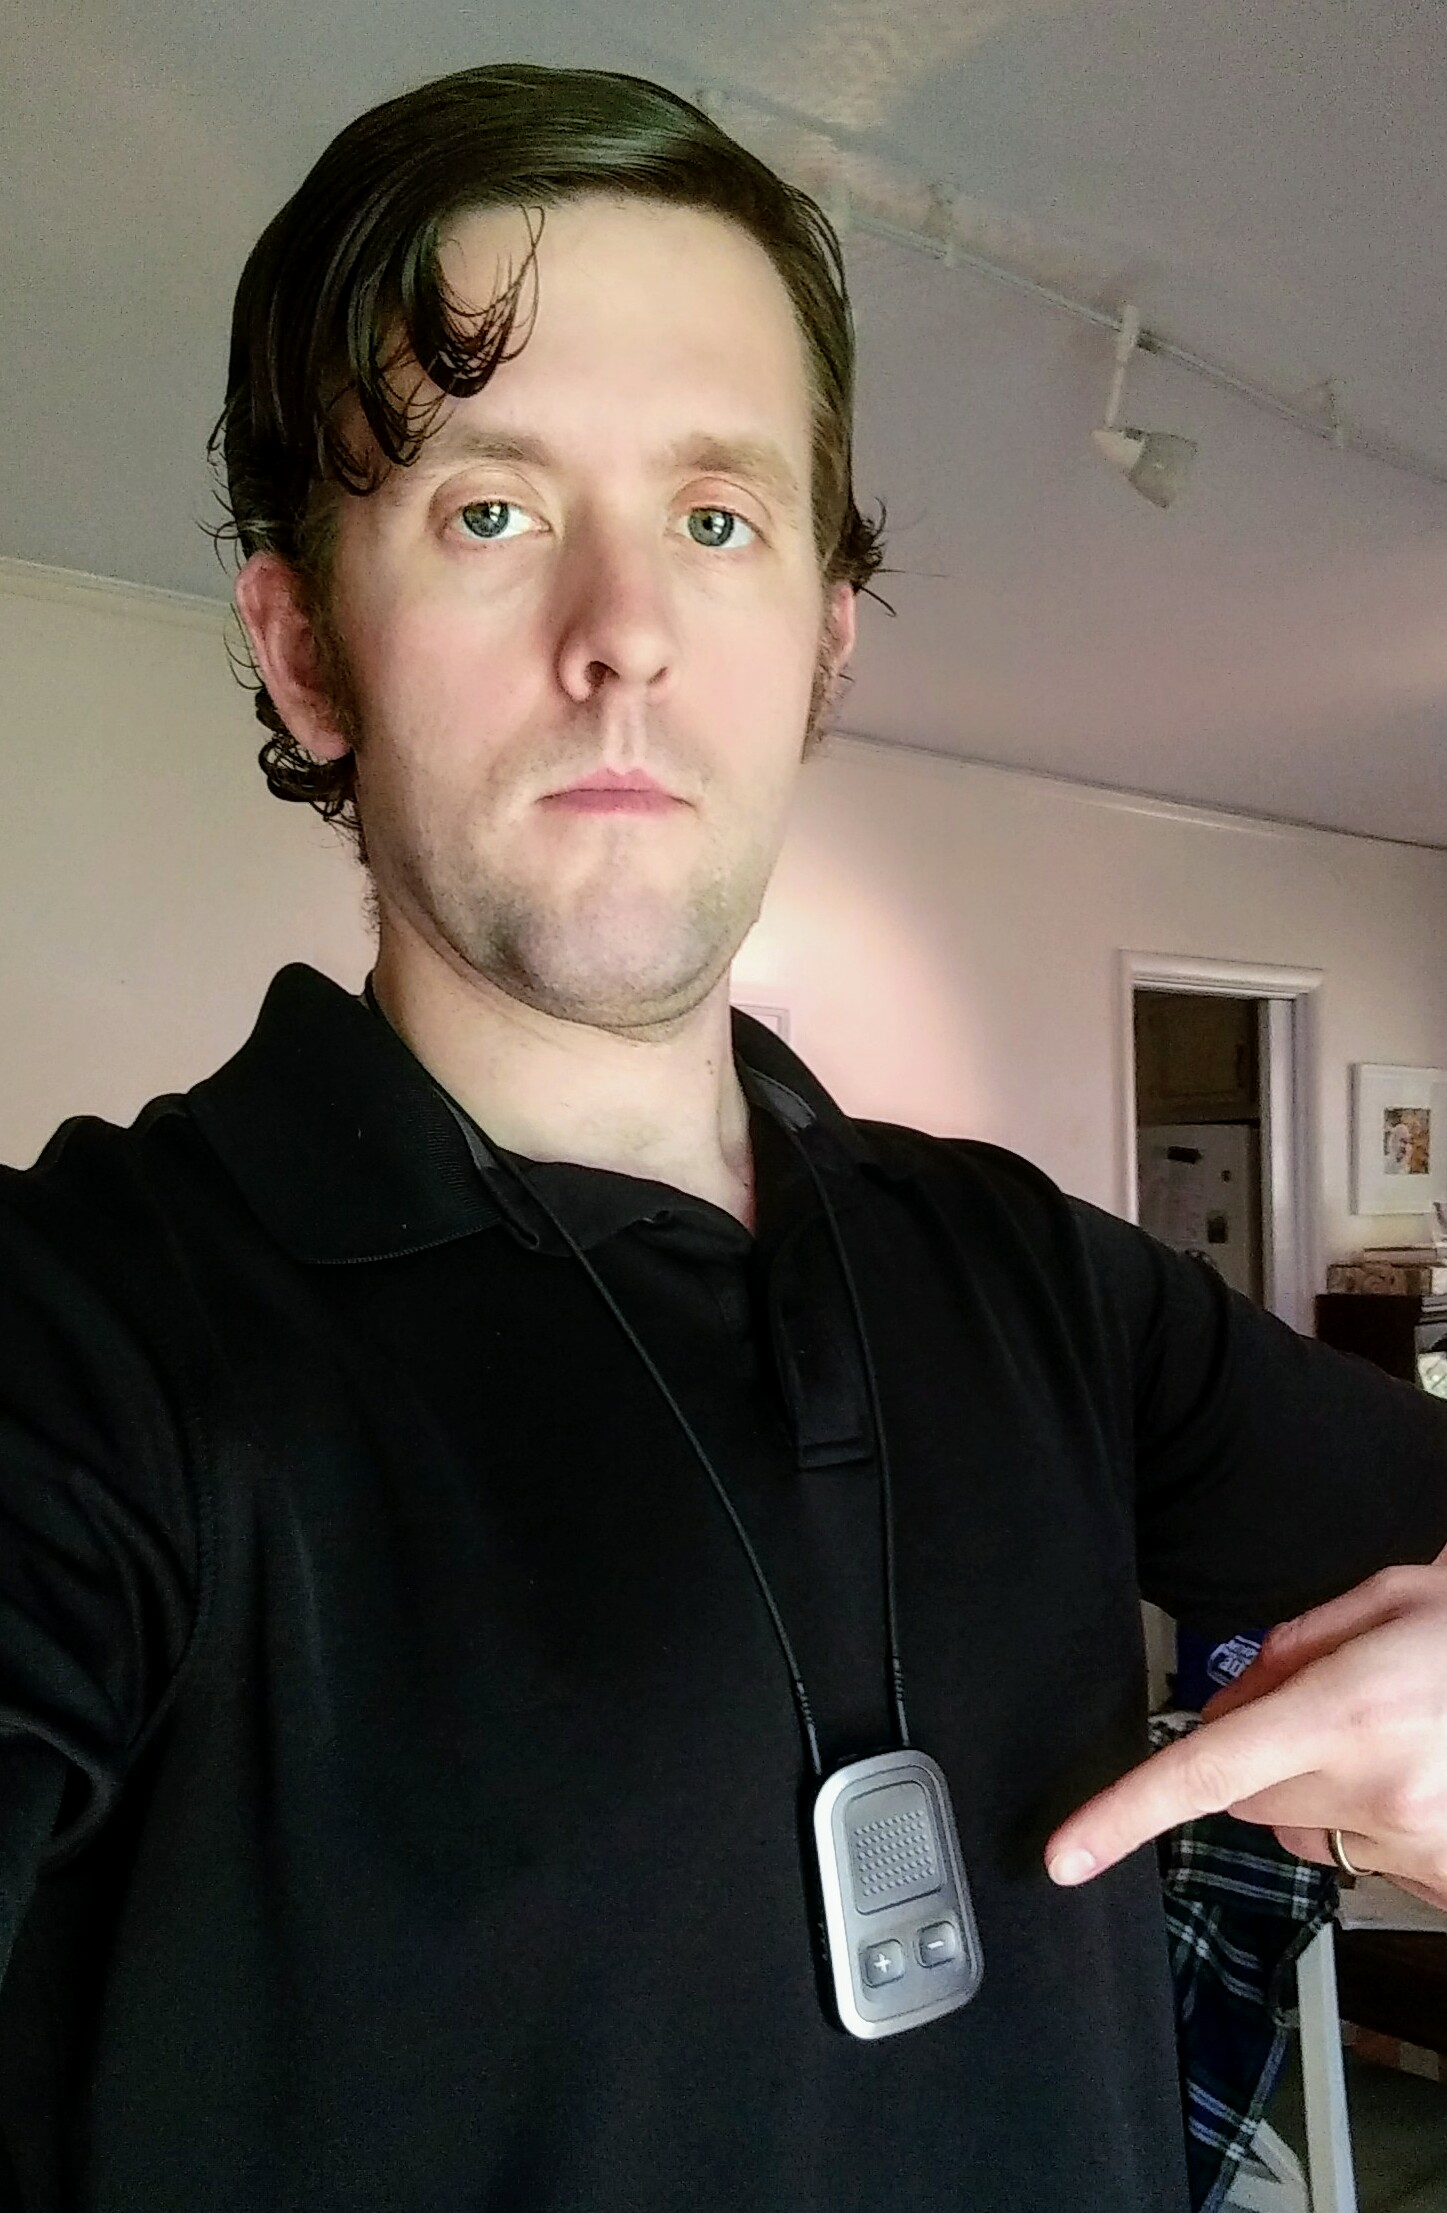 selfie of the author wearing a udirect 3 pendant